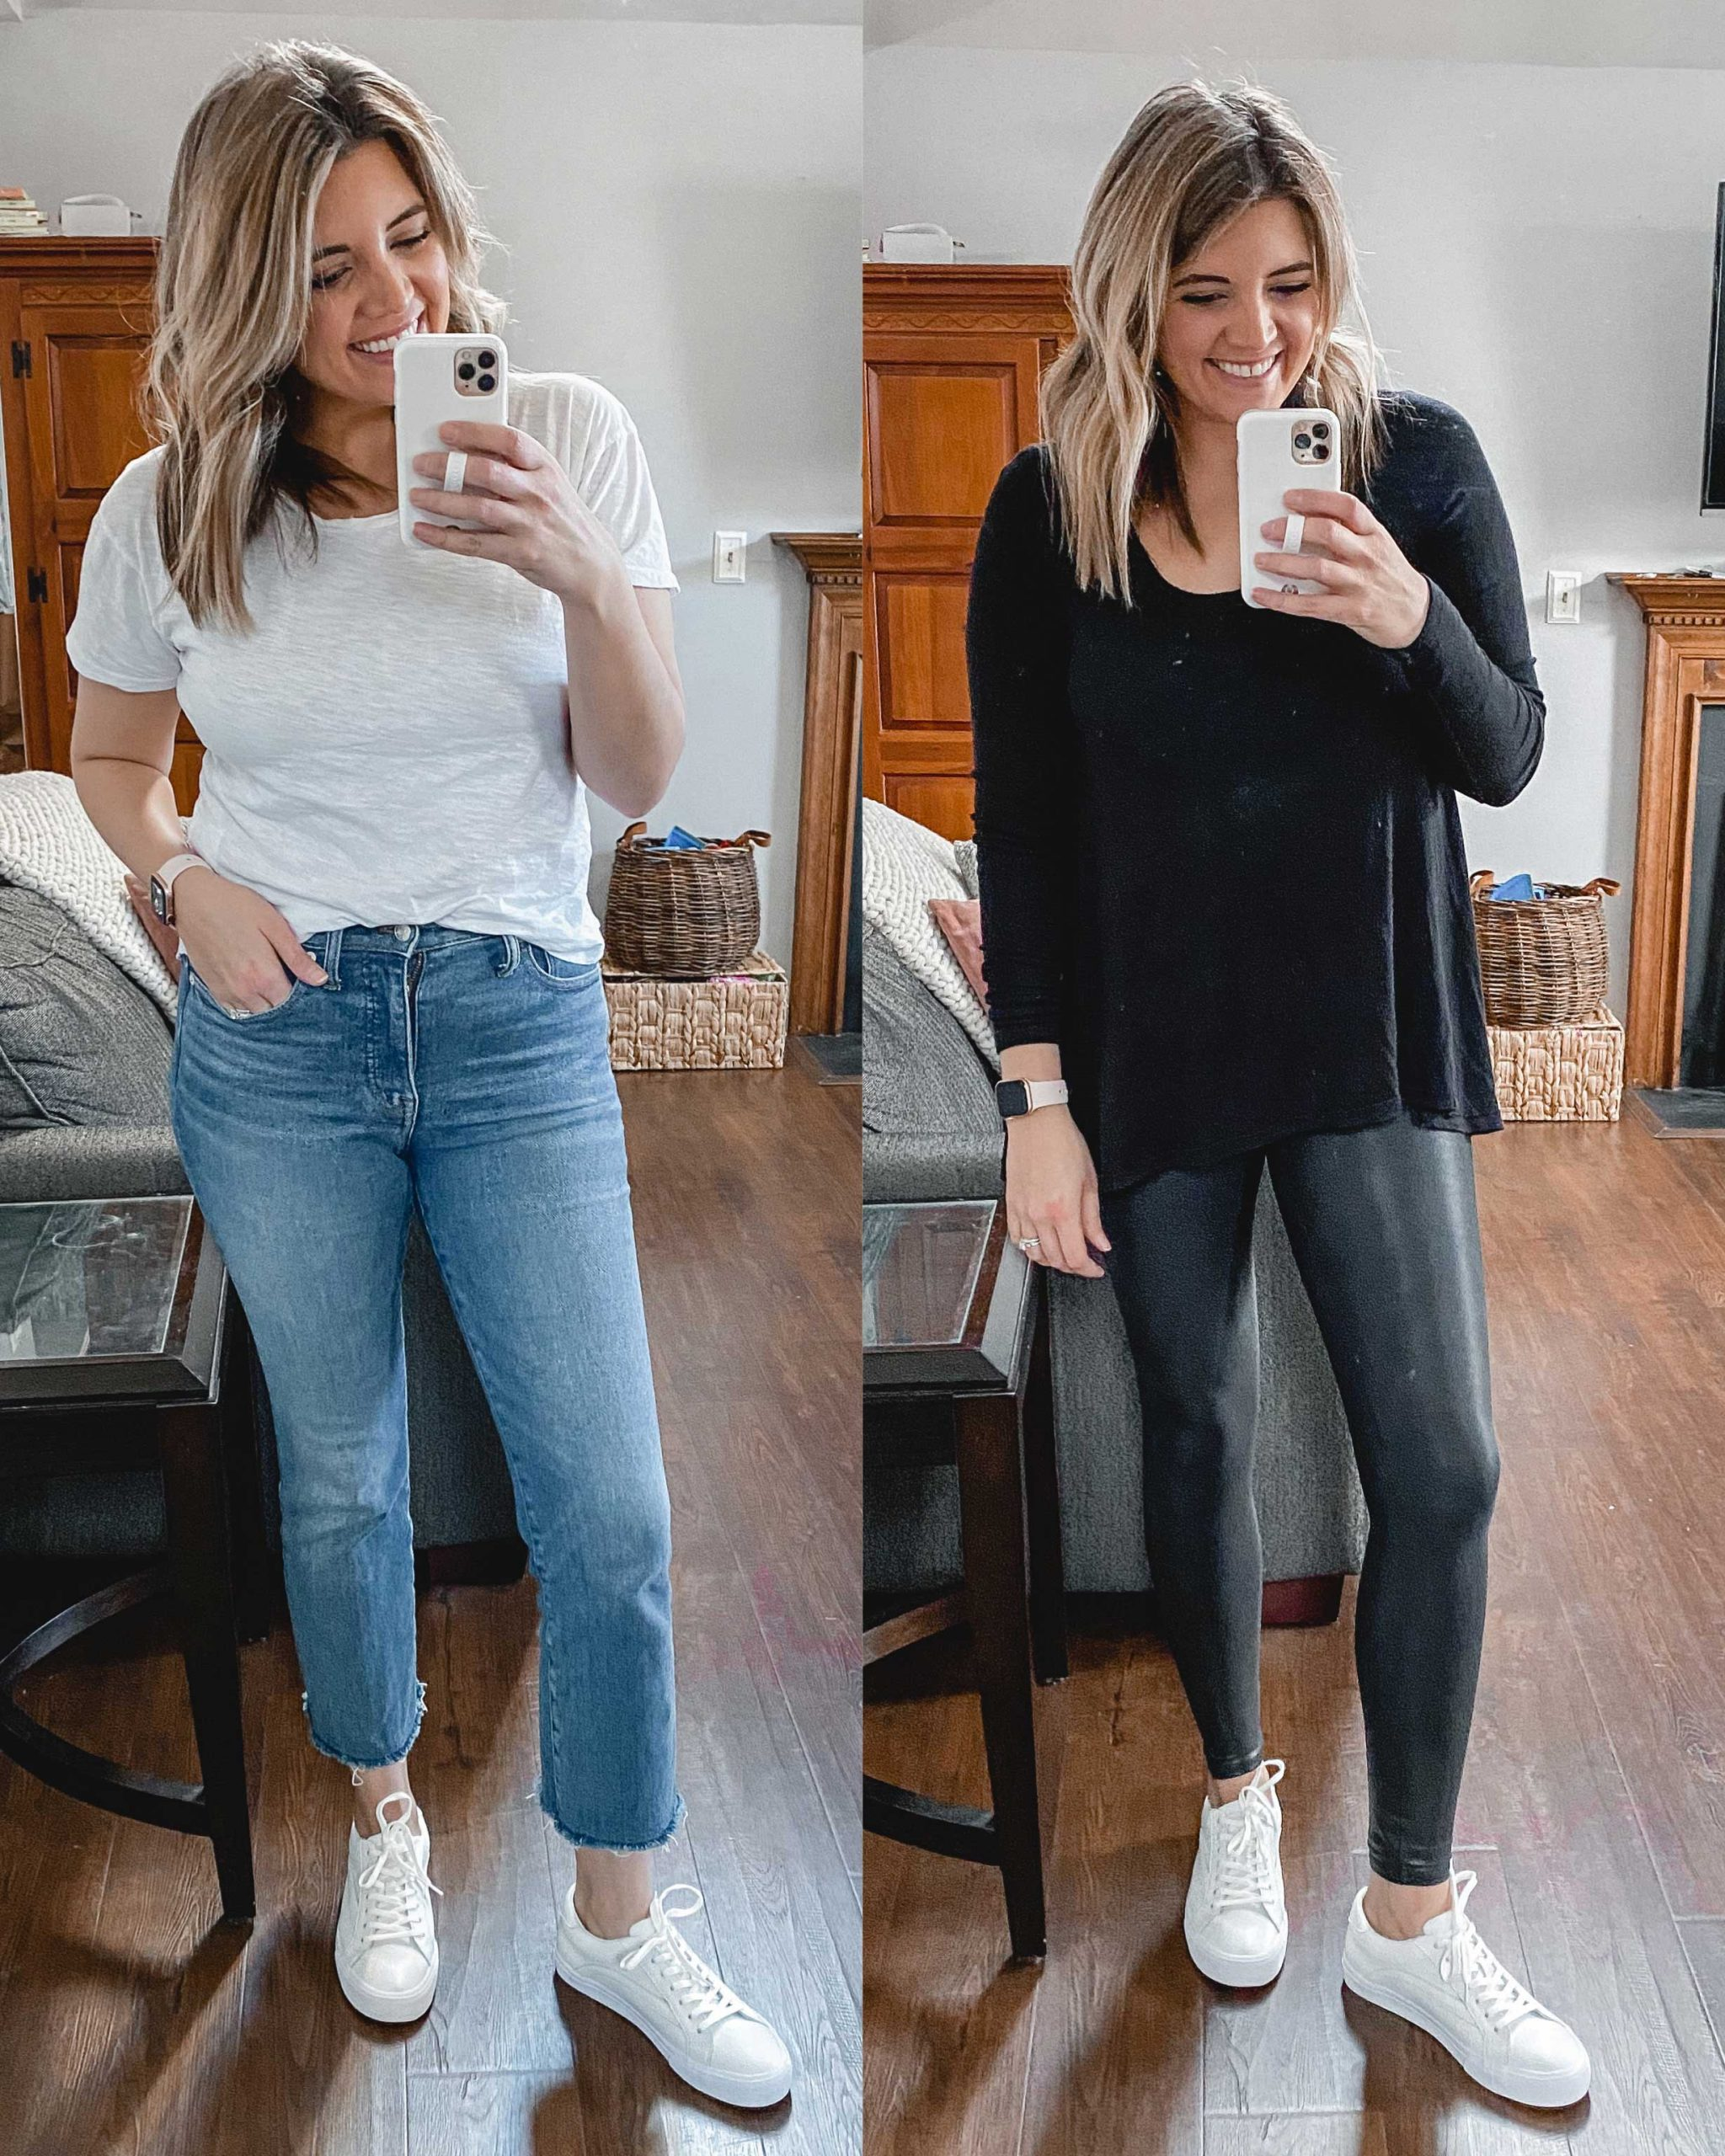 Virginia blogger, Lauren Dix, tries on 10 different pairs of white sneakers for the ultimate white sneaker review! She wears the Madewell Sidewalk sneakers with both jeans and leggings!